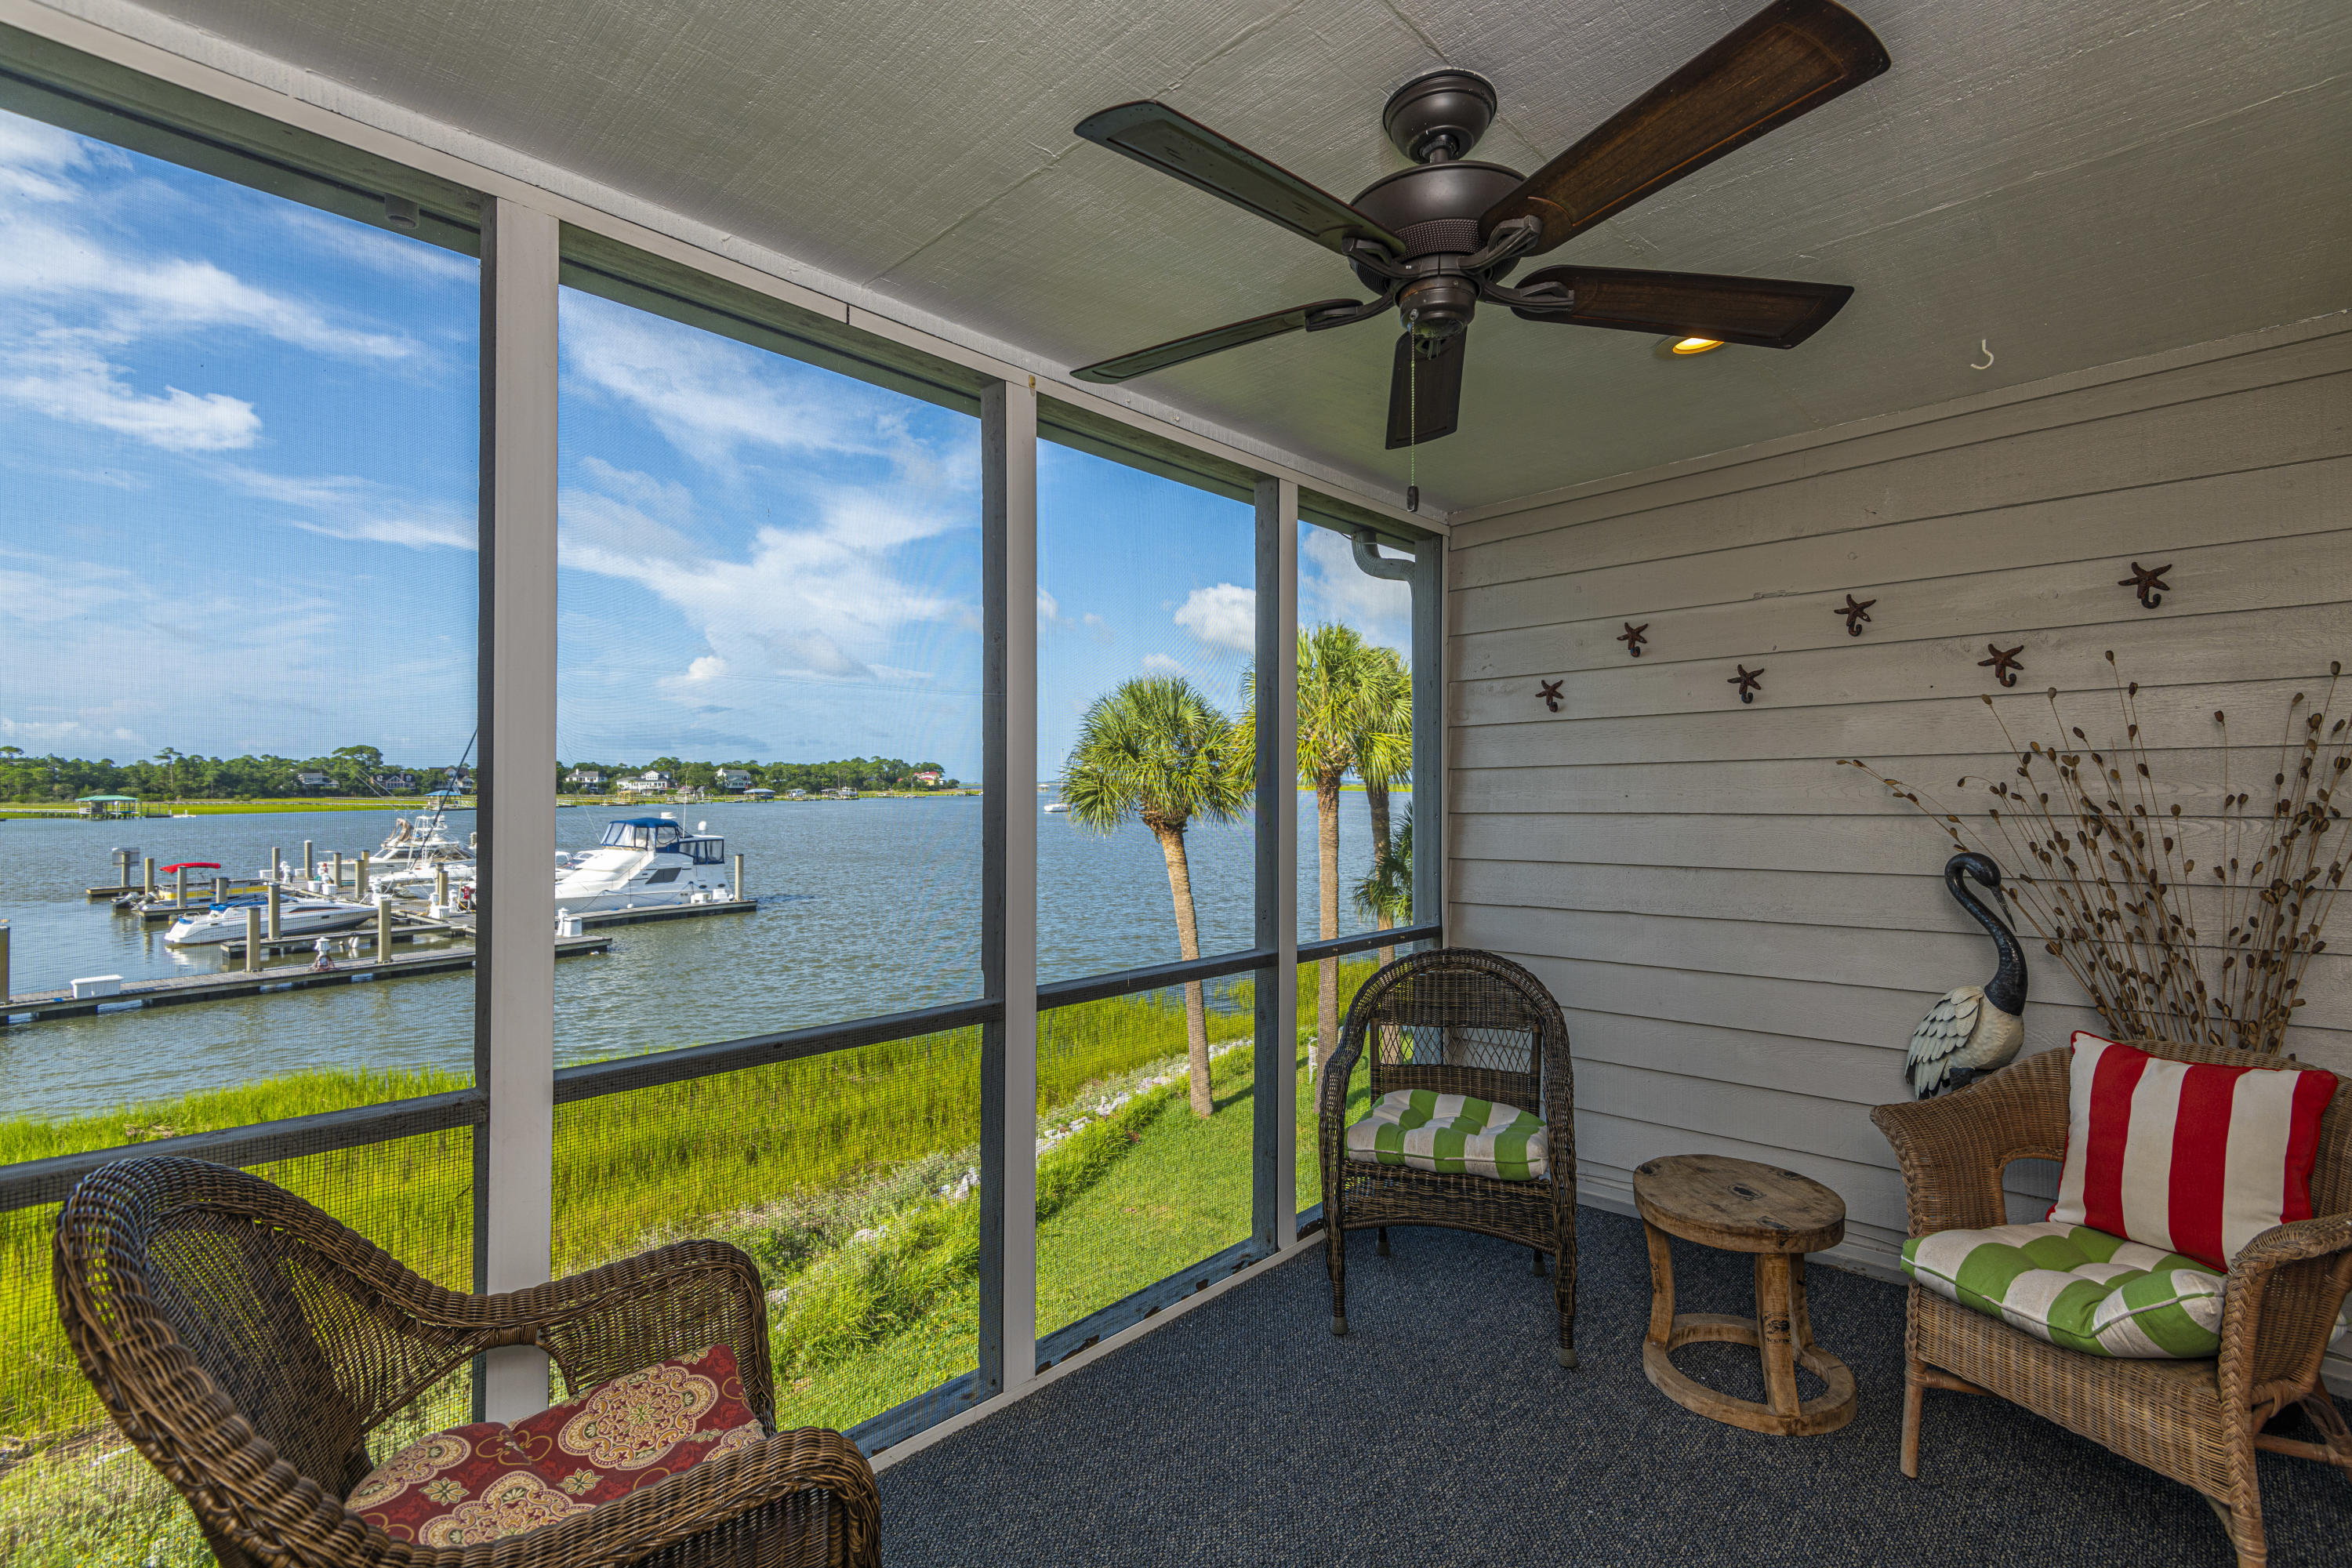 Mariners Cay Homes For Sale - 71 Mariners Cay, Folly Beach, SC - 41